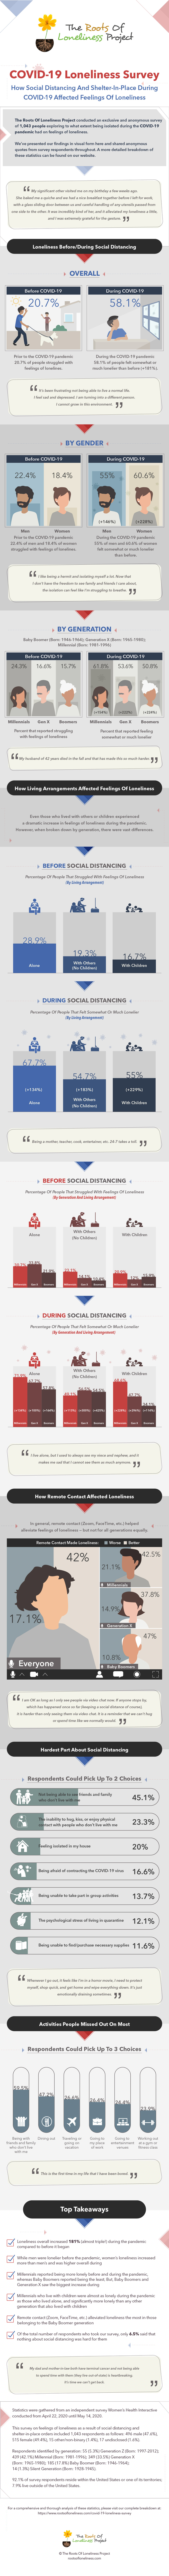 Infographic Showing The Results Of A Women's Health Interactive Survey On Loneliness Before And During Social Distancing And COVID-19